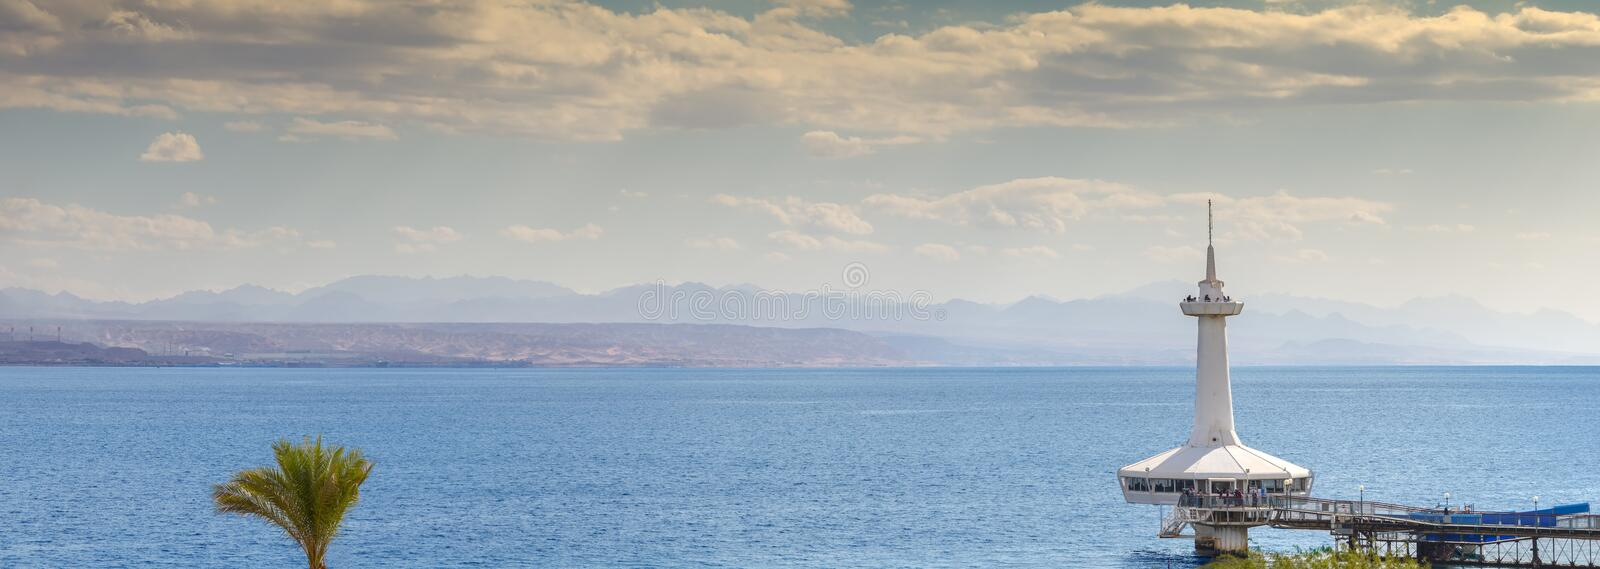 EILAT, ISRAEL - JANUARY 04, 2018: Marine underwater observatory building. Eilat is the southernmost city in Israel with coral beaches and exit to the Indian royalty free stock photography